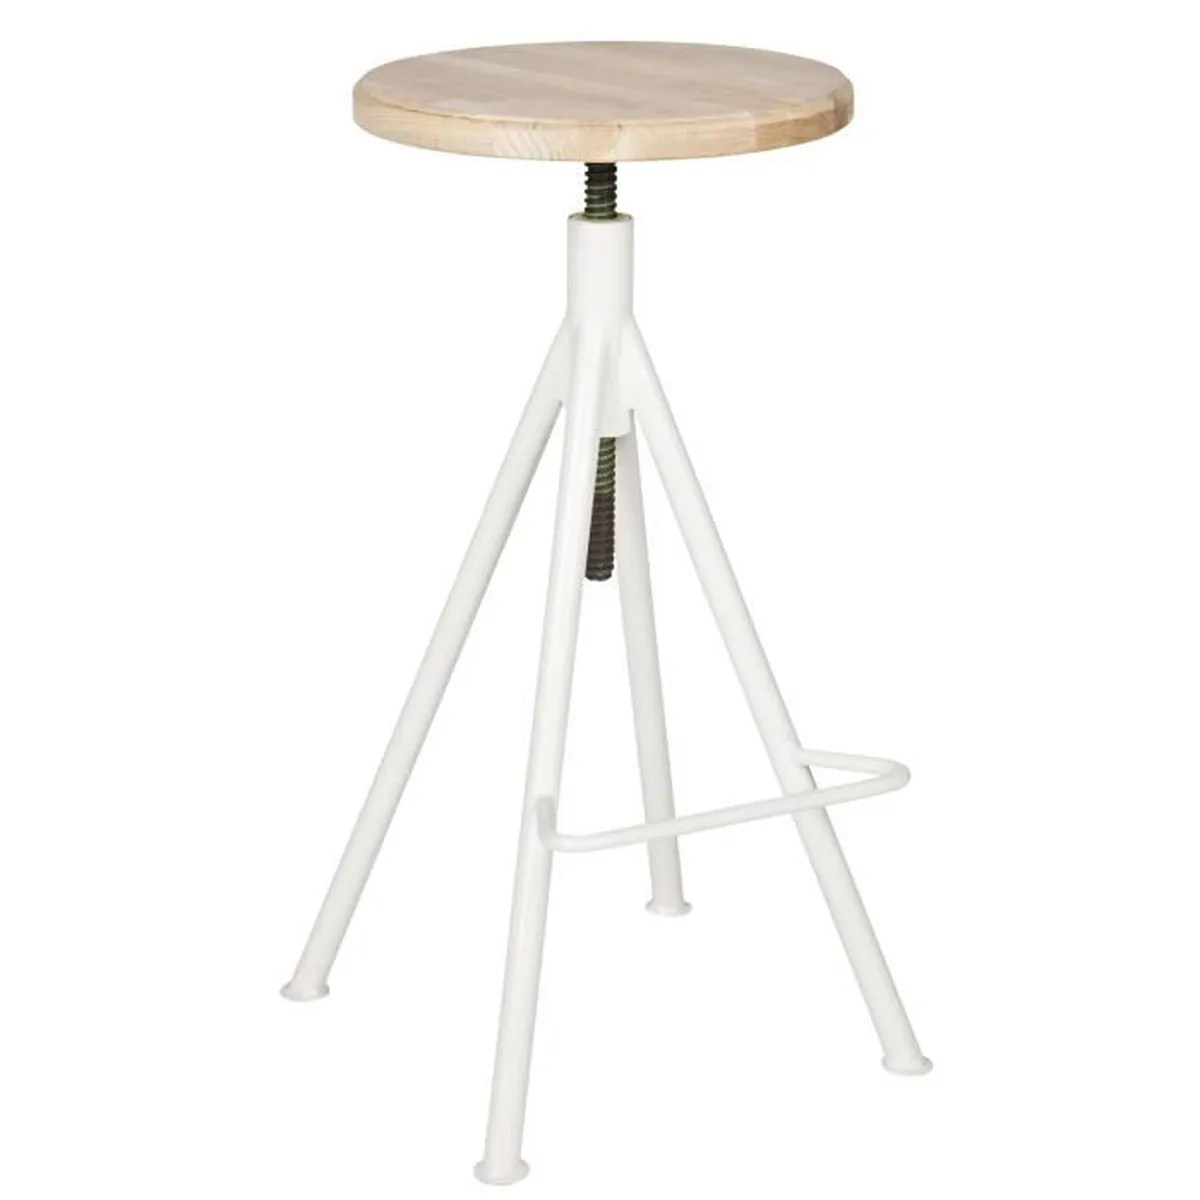 Tabouret Haut Blanc Great Tabouret De Bar Bois Blanc With Tabouret Bar Bois Blanc